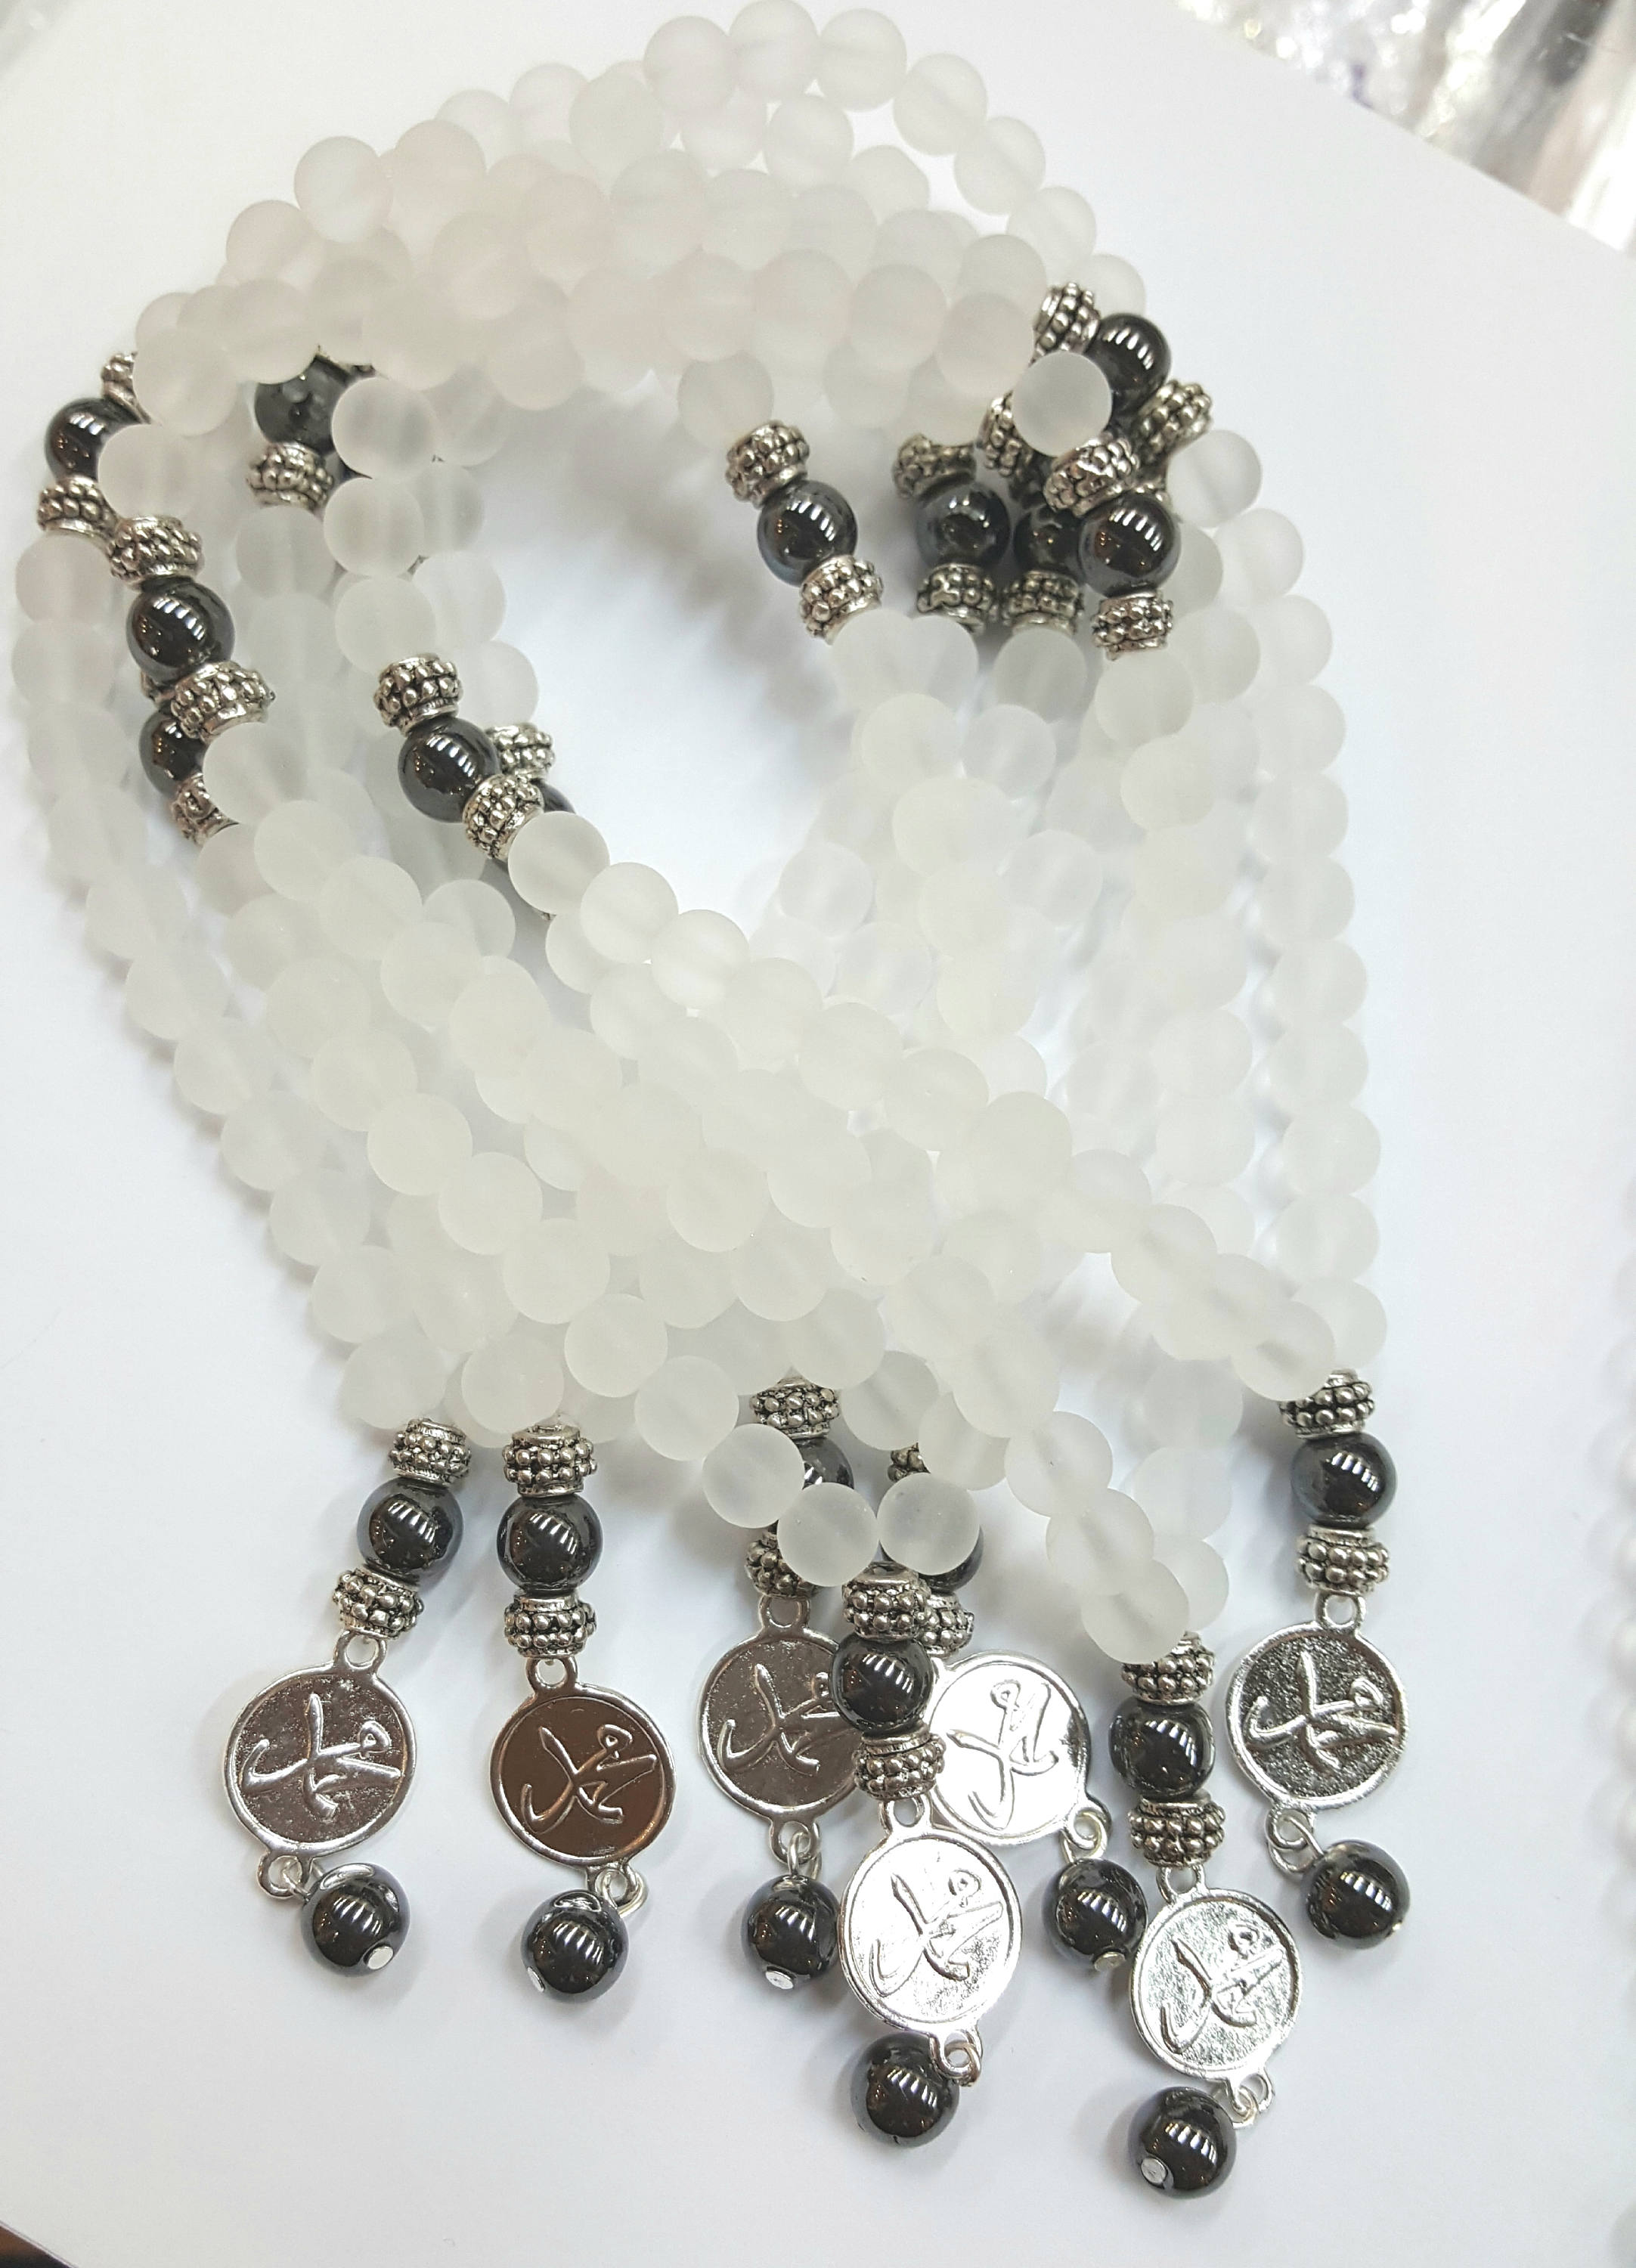 33 Connectors and Charms